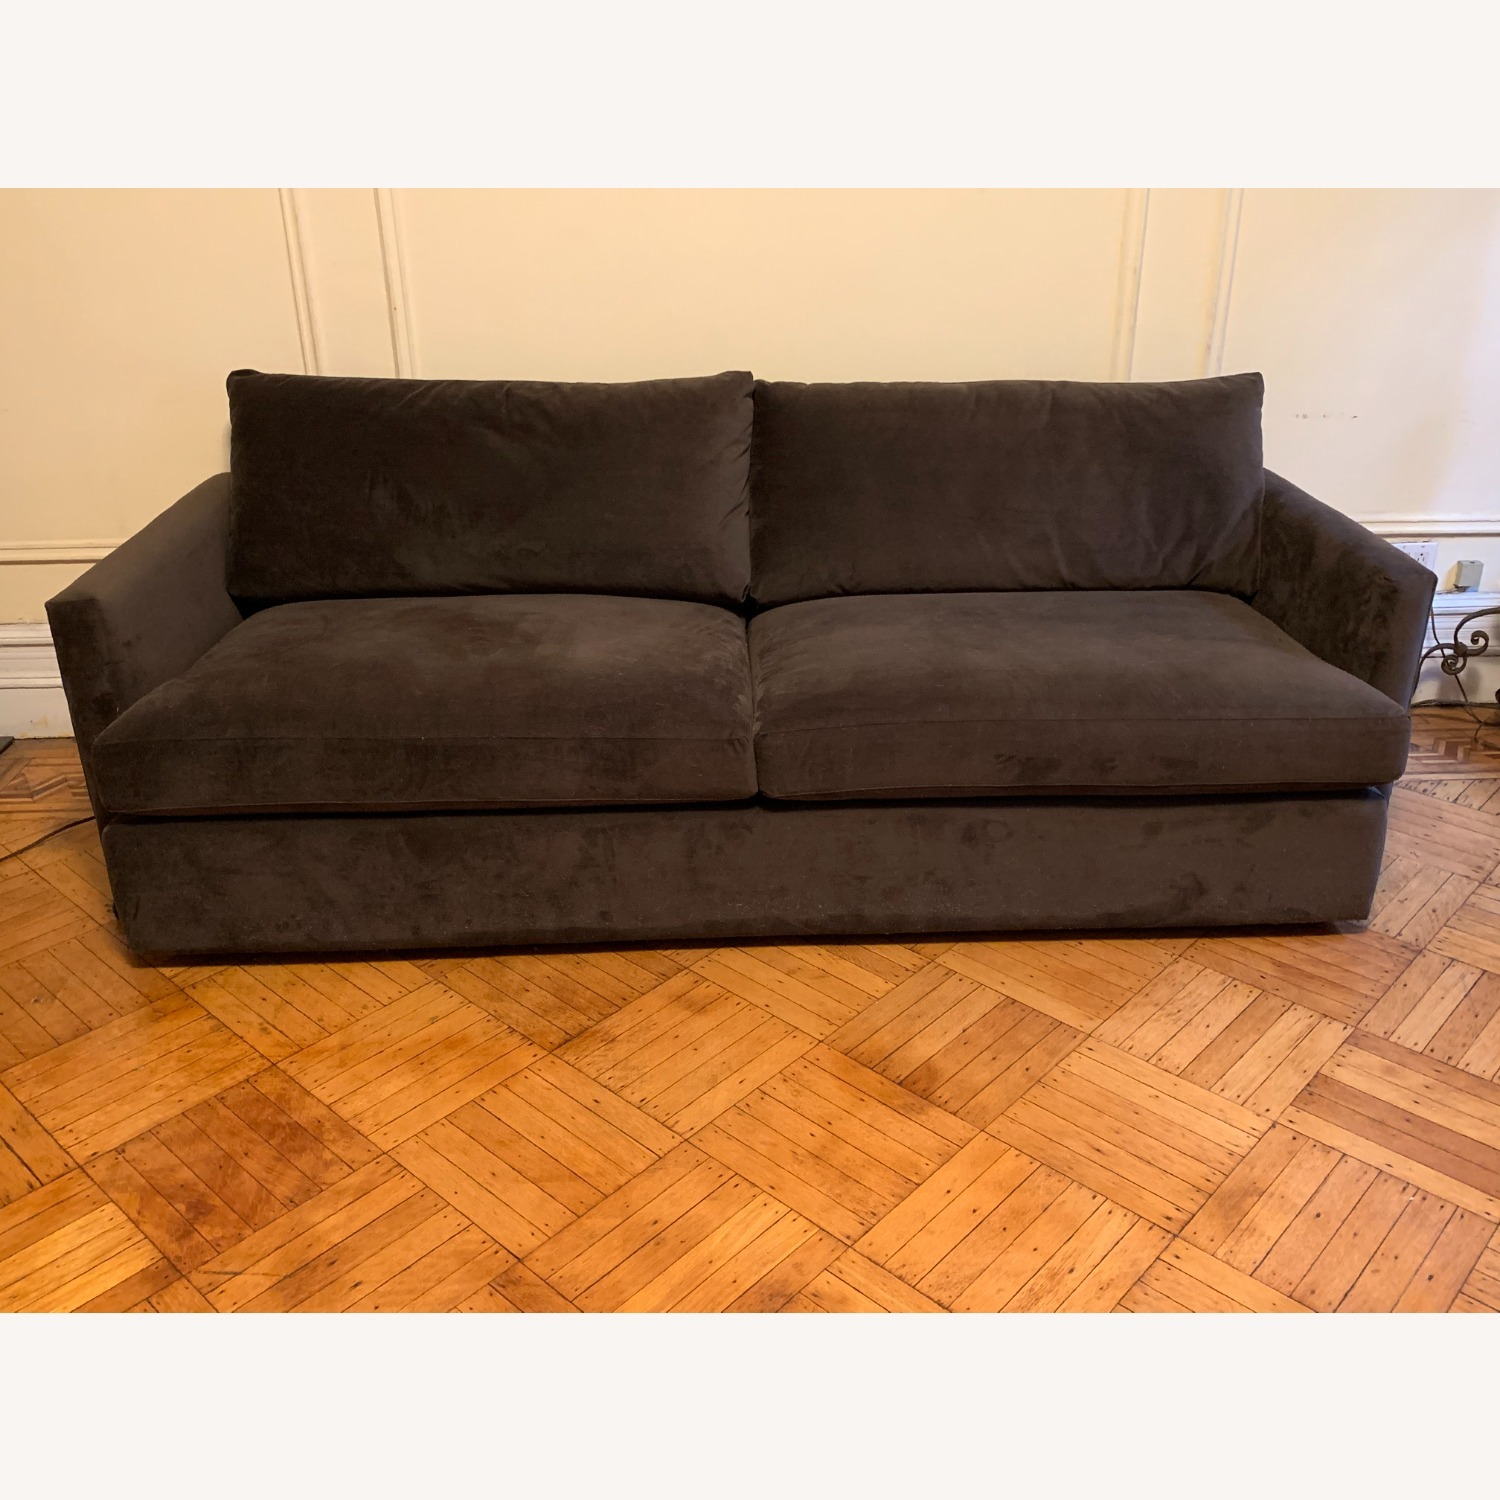 Crate and Barrel Chocolate Velvet Lounge Sofa - image-1